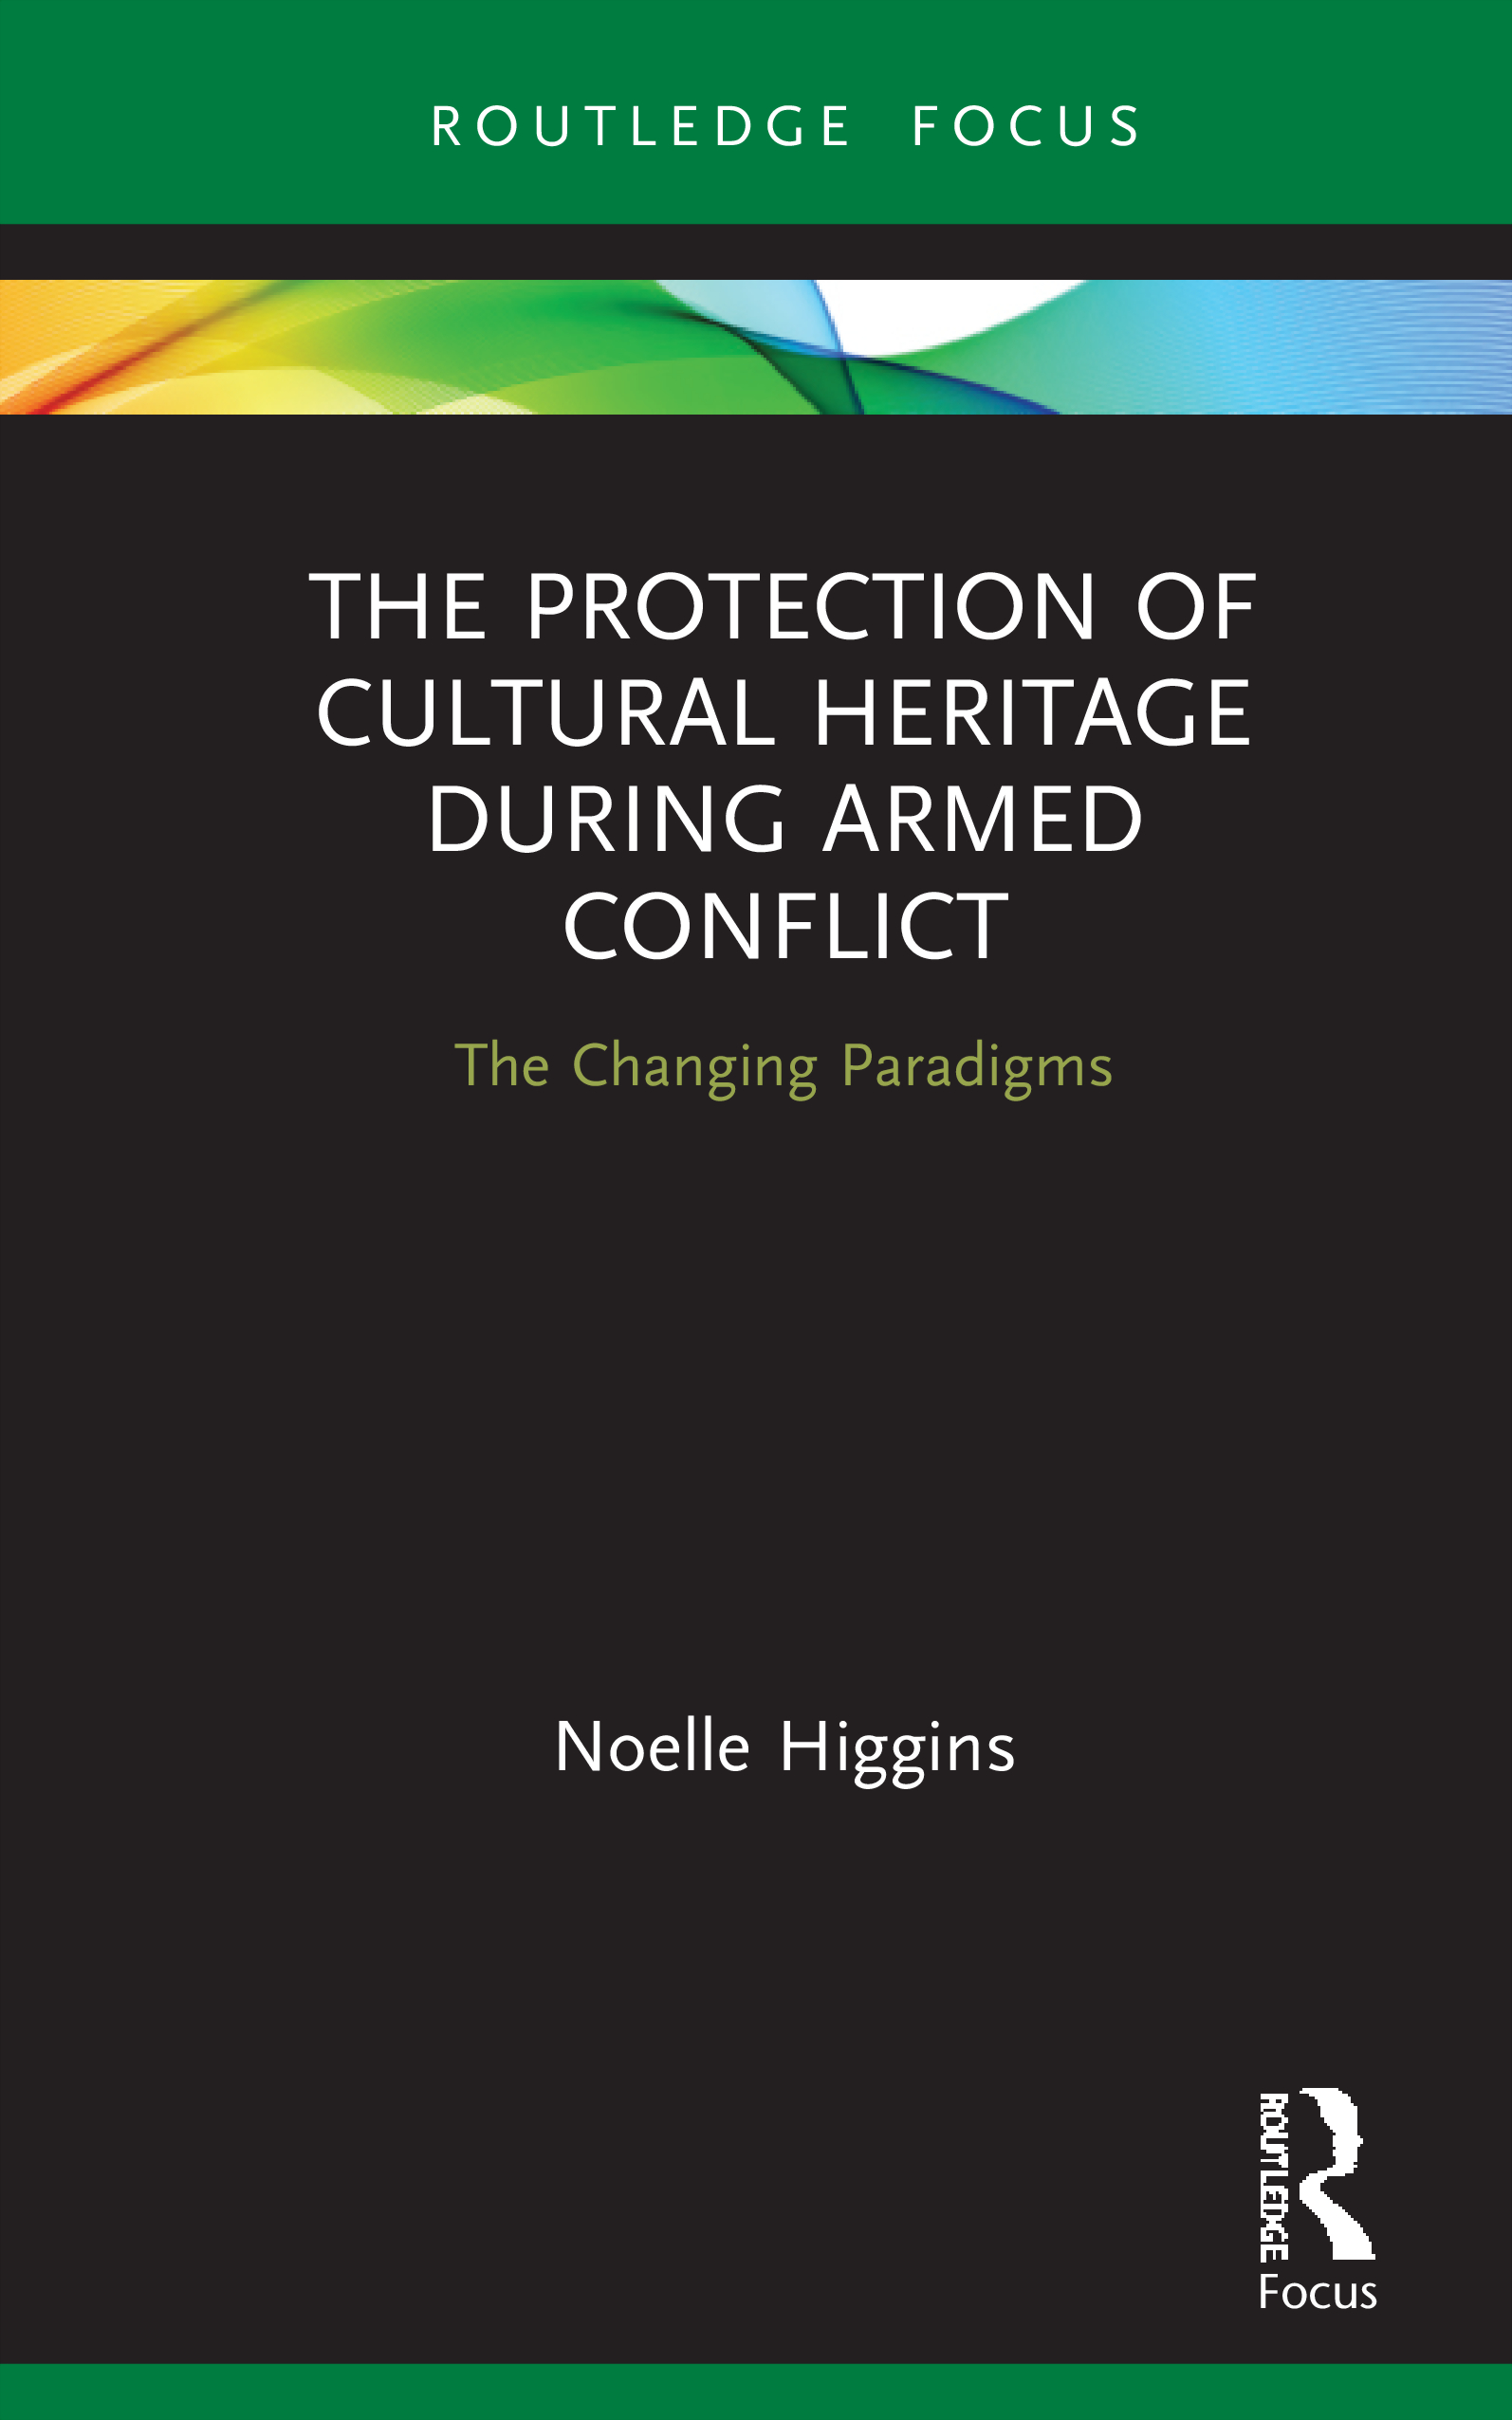 The Protection of Cultural Heritage During Armed Conflict: The Changing Paradigms book cover